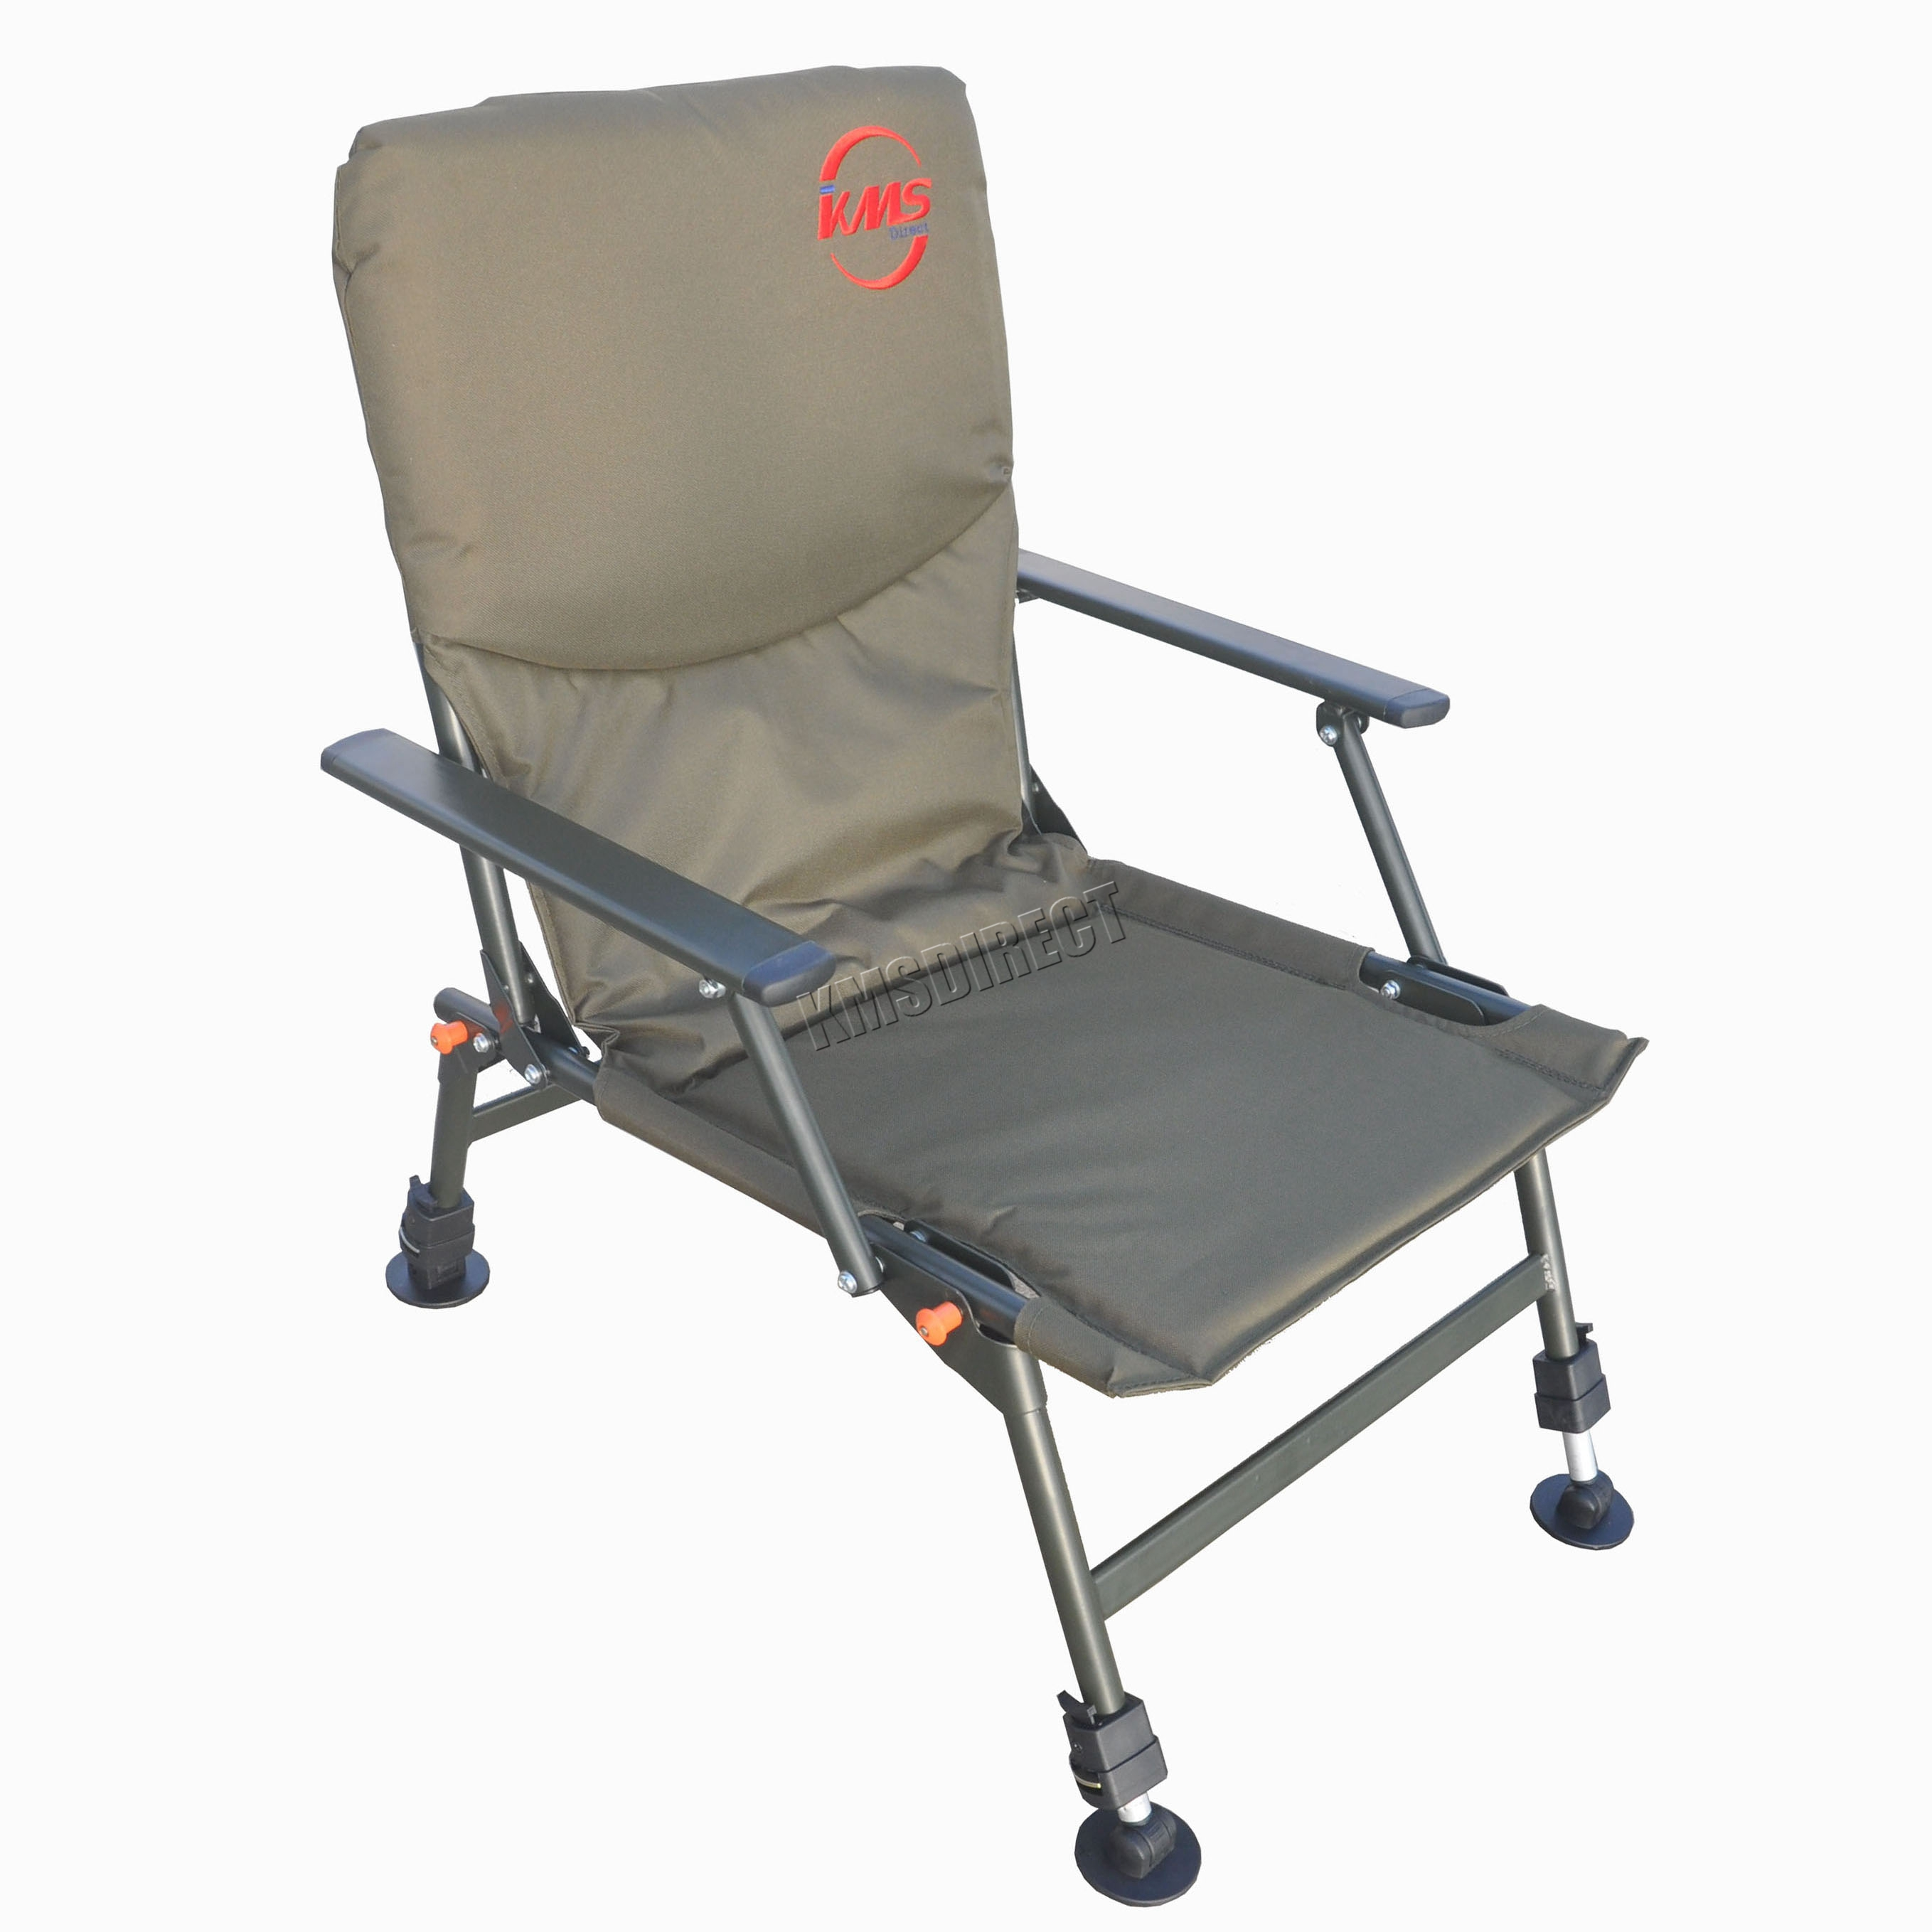 Portable Folding Carp Fishing Chair Camping Heavy Duty 4 Adjustable Legs FC 0